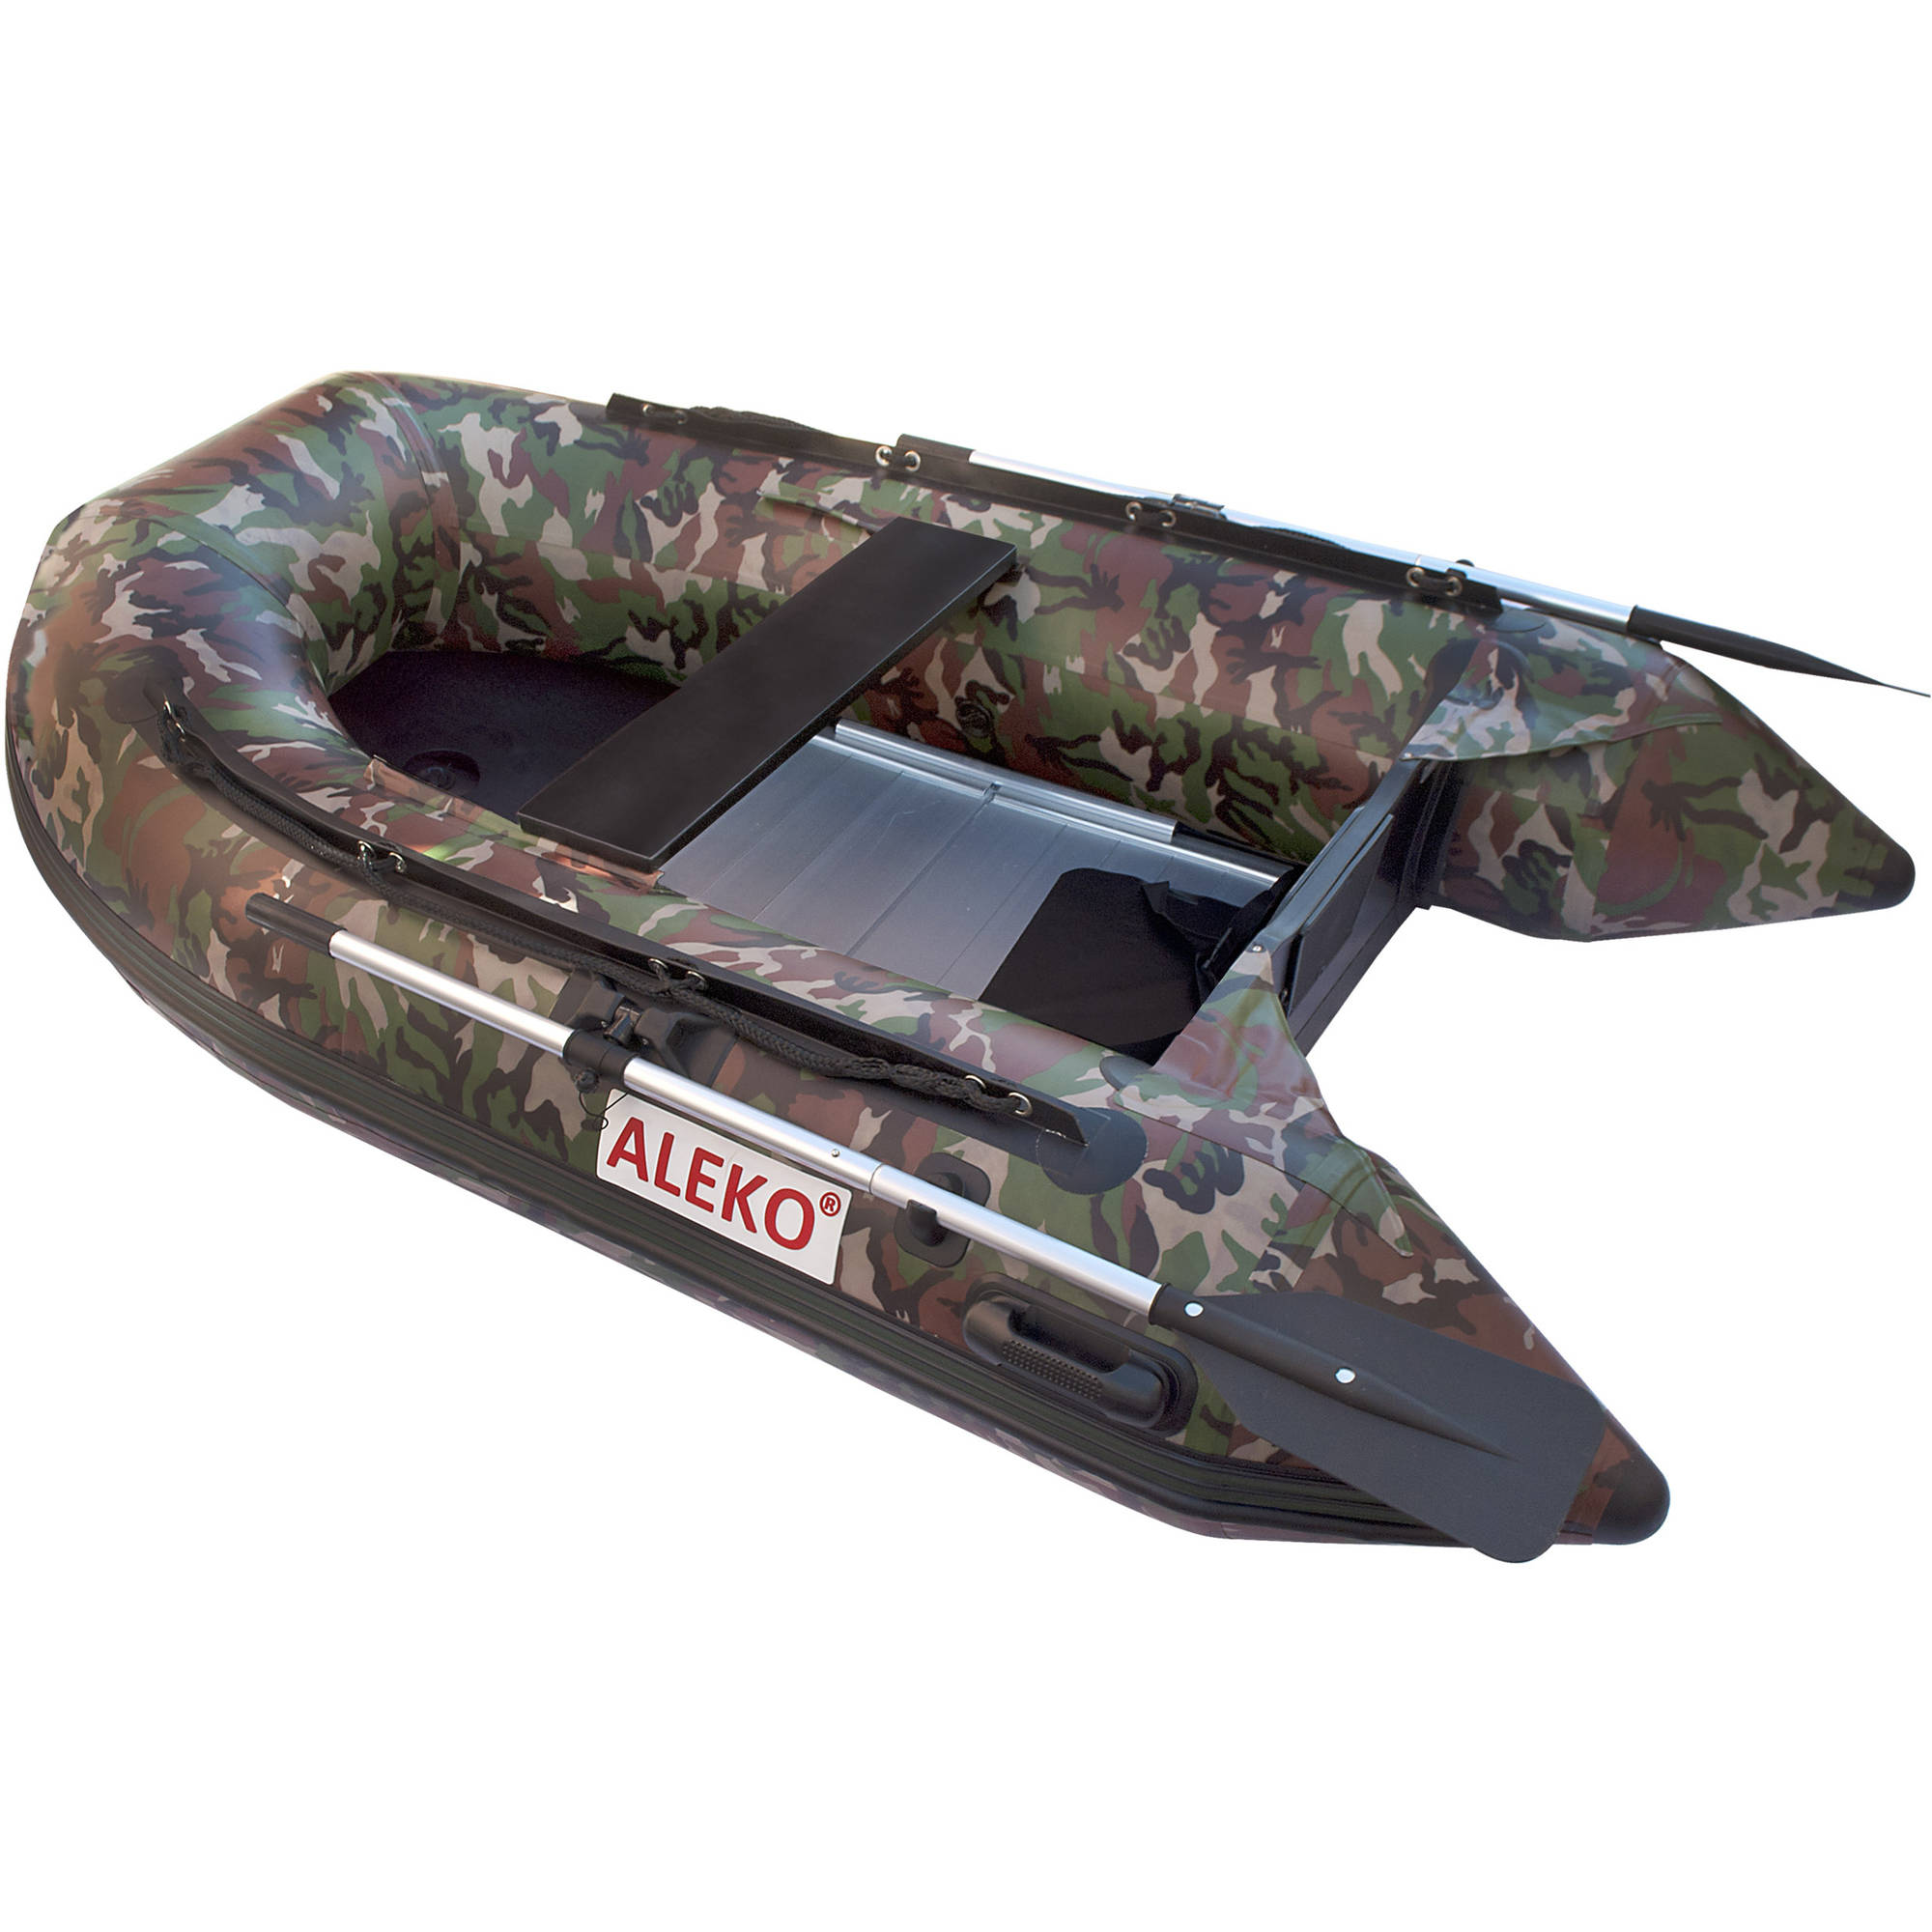 ALEKO Inflatable Boat - Aluminum Floor - 3-Person - 8.4 Feet - Camouflage